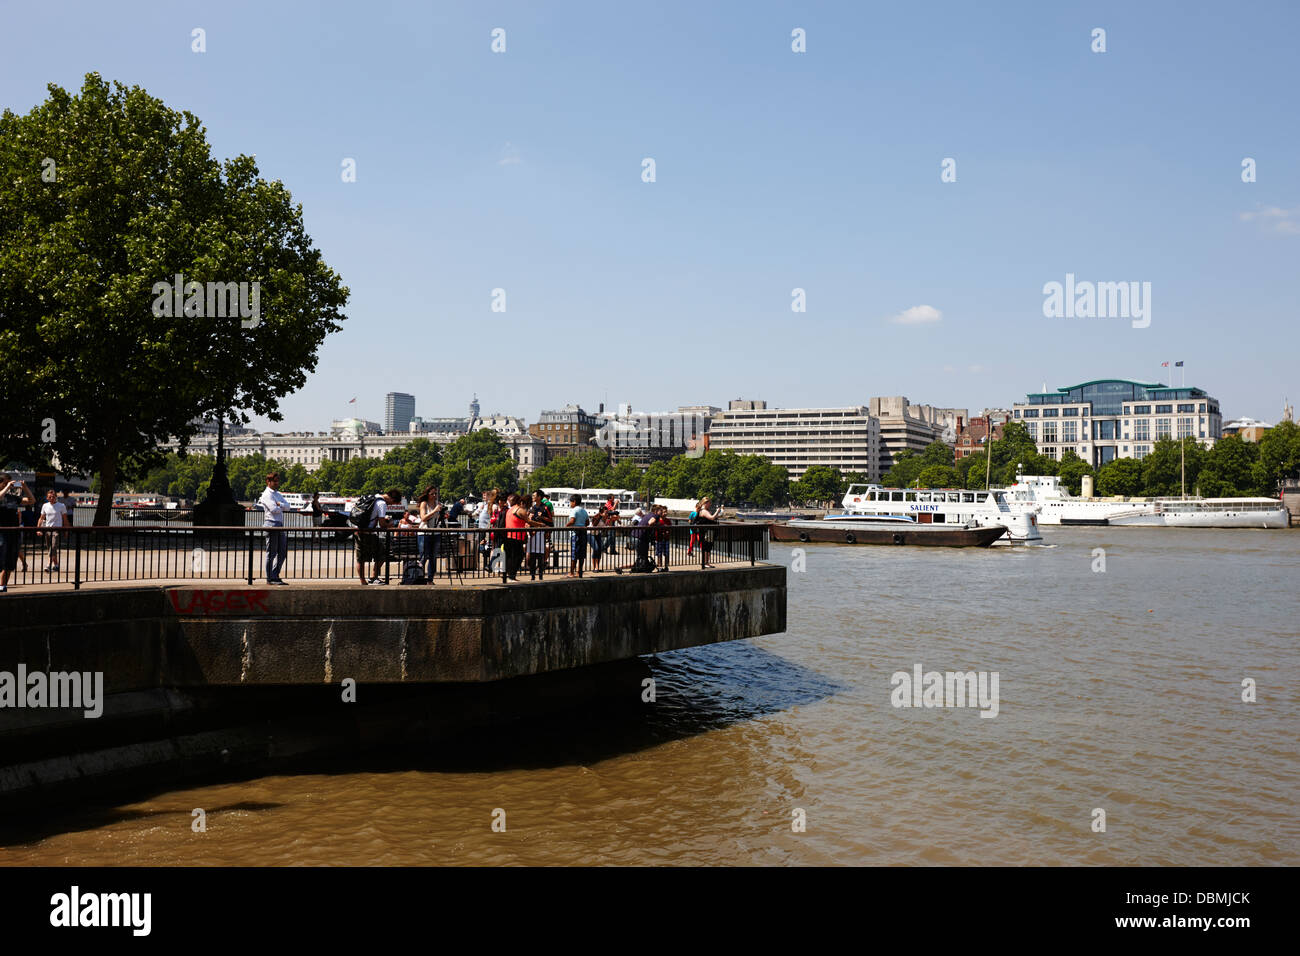 tourists at viewpoint on the south bank of the river thames London England UK - Stock Image